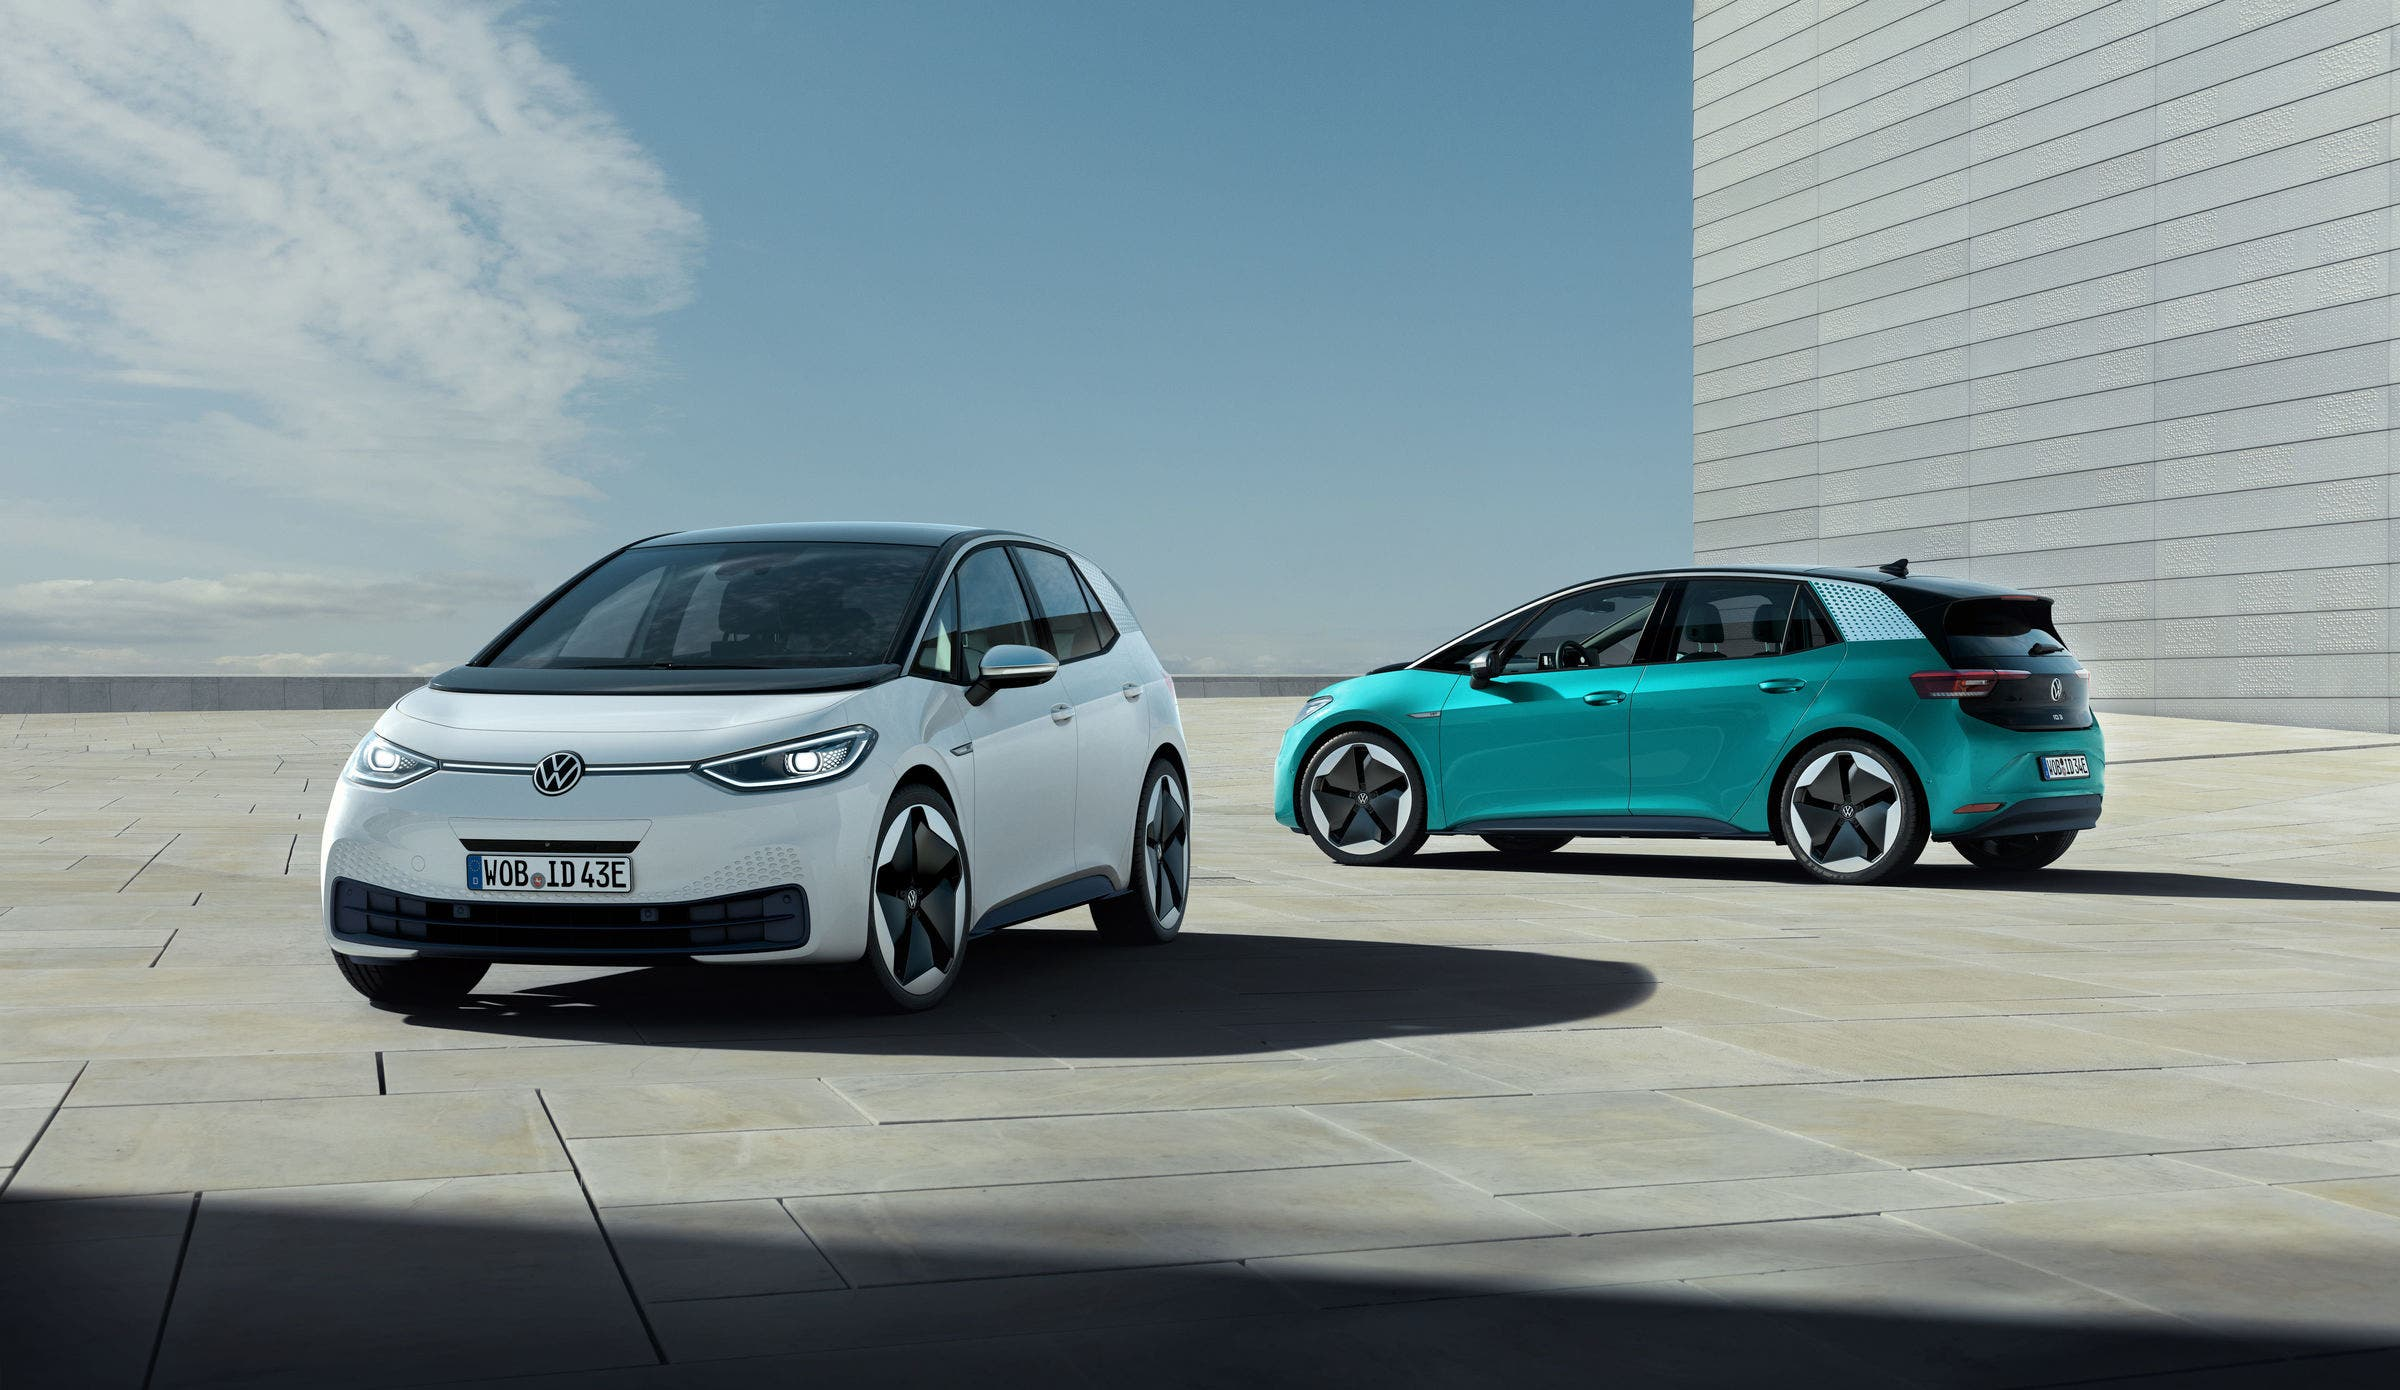 Steve White Vw >> Volkswagen Id 3 Update More Delays Expected Cleantechnica